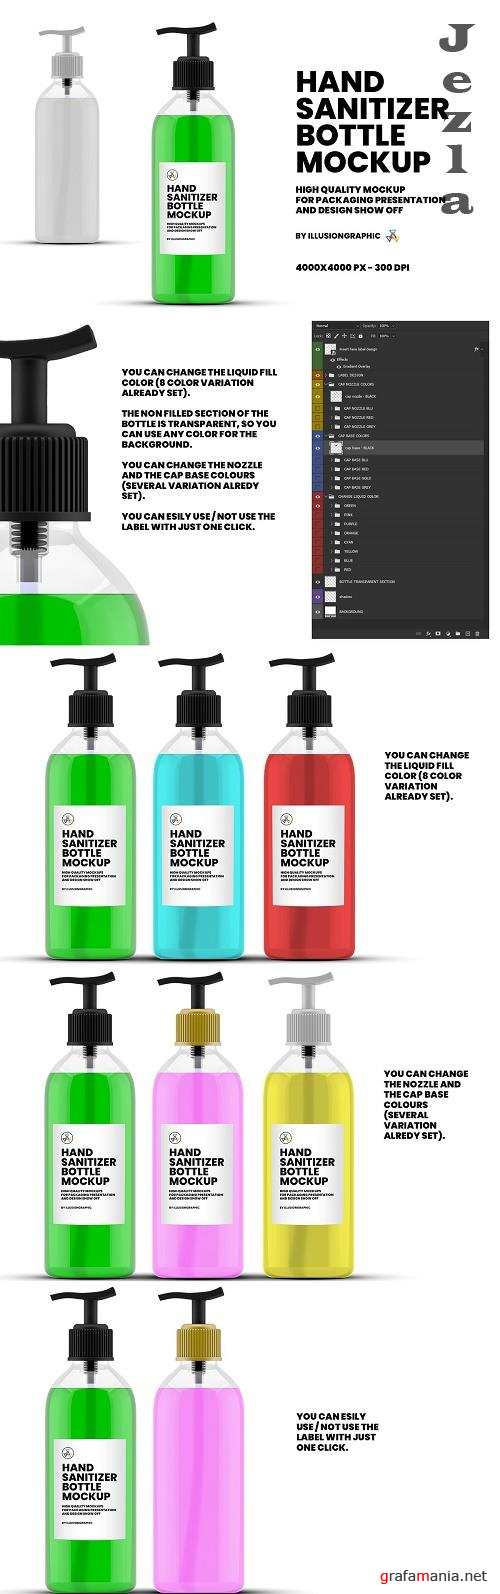 Hand Sanitizer Bottle Mockup - 4795093